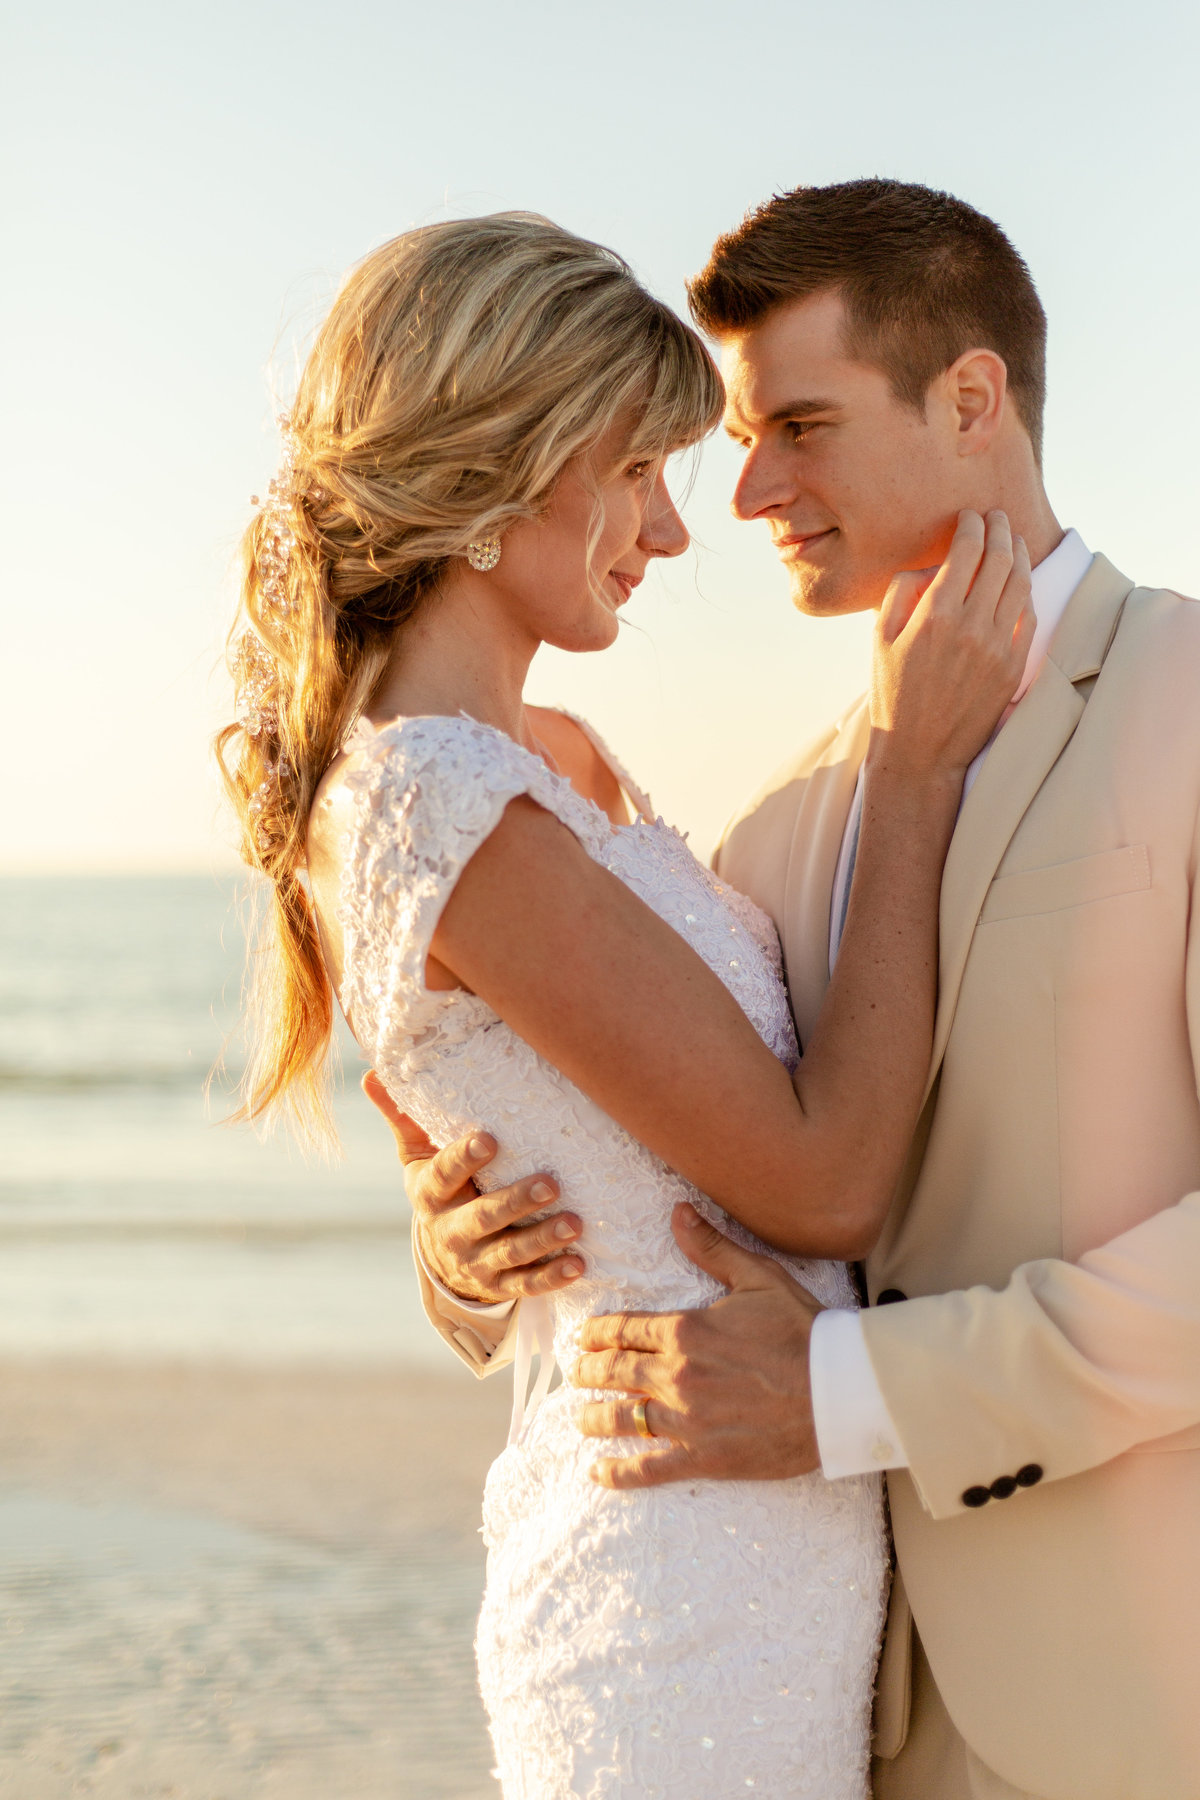 Bride and groom smile at each other on their wedding day at the beach in Dunedin, Florida at sunset with golden hour glow